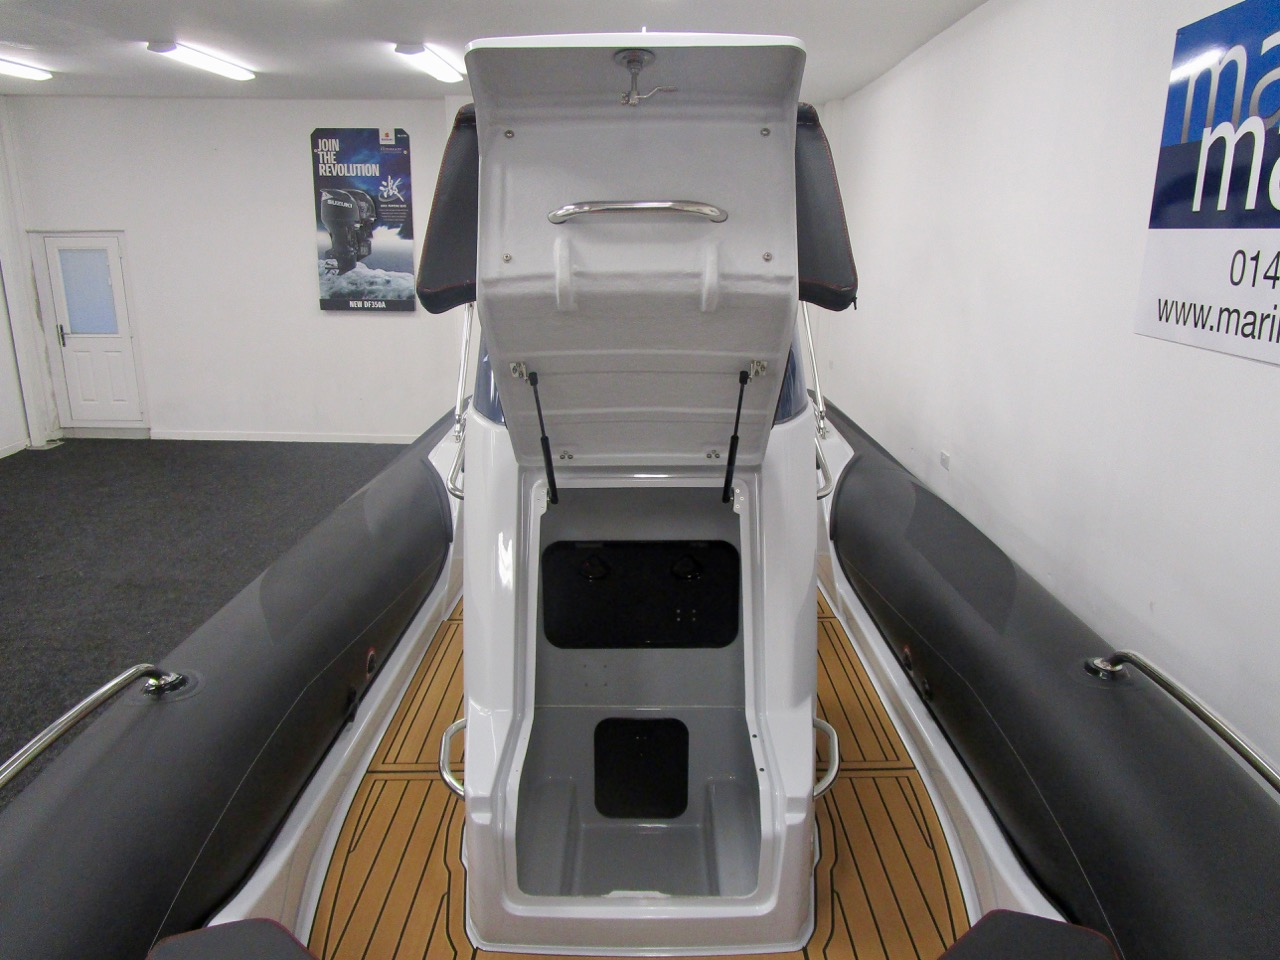 GRAND G750 RIB very big console locker